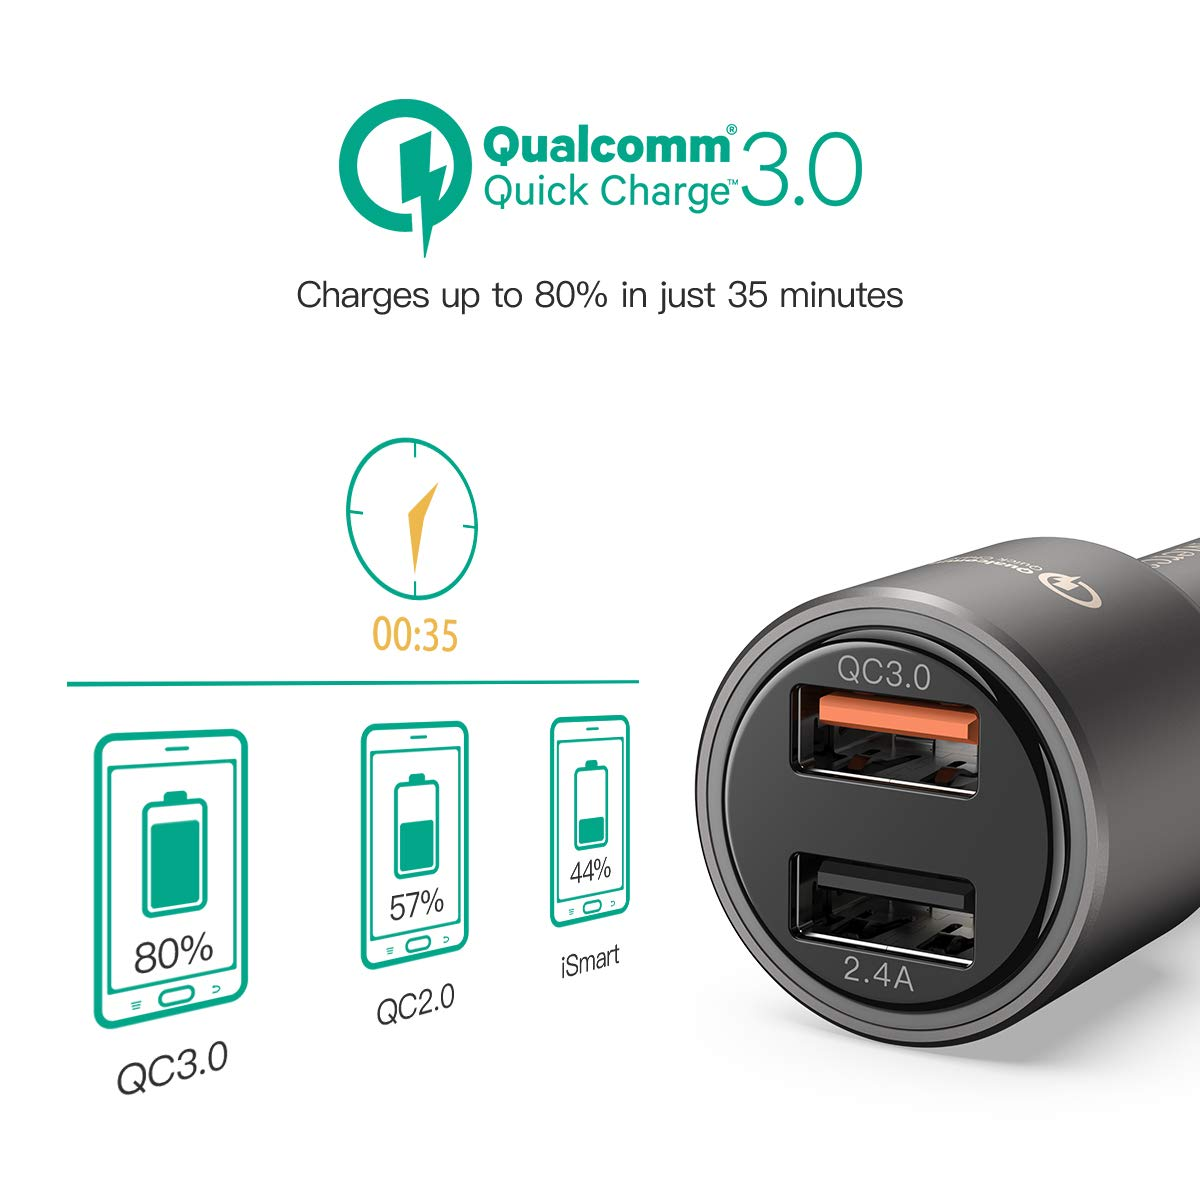 Mercase USB Car Phone Charger [Quick Charge 3.0 and 2.4A, High-Speed Smart Charging, Built-in Safety Protection] Fast Charge Adapter for Samsung, iPhone, LG, iPad and More Dual Port